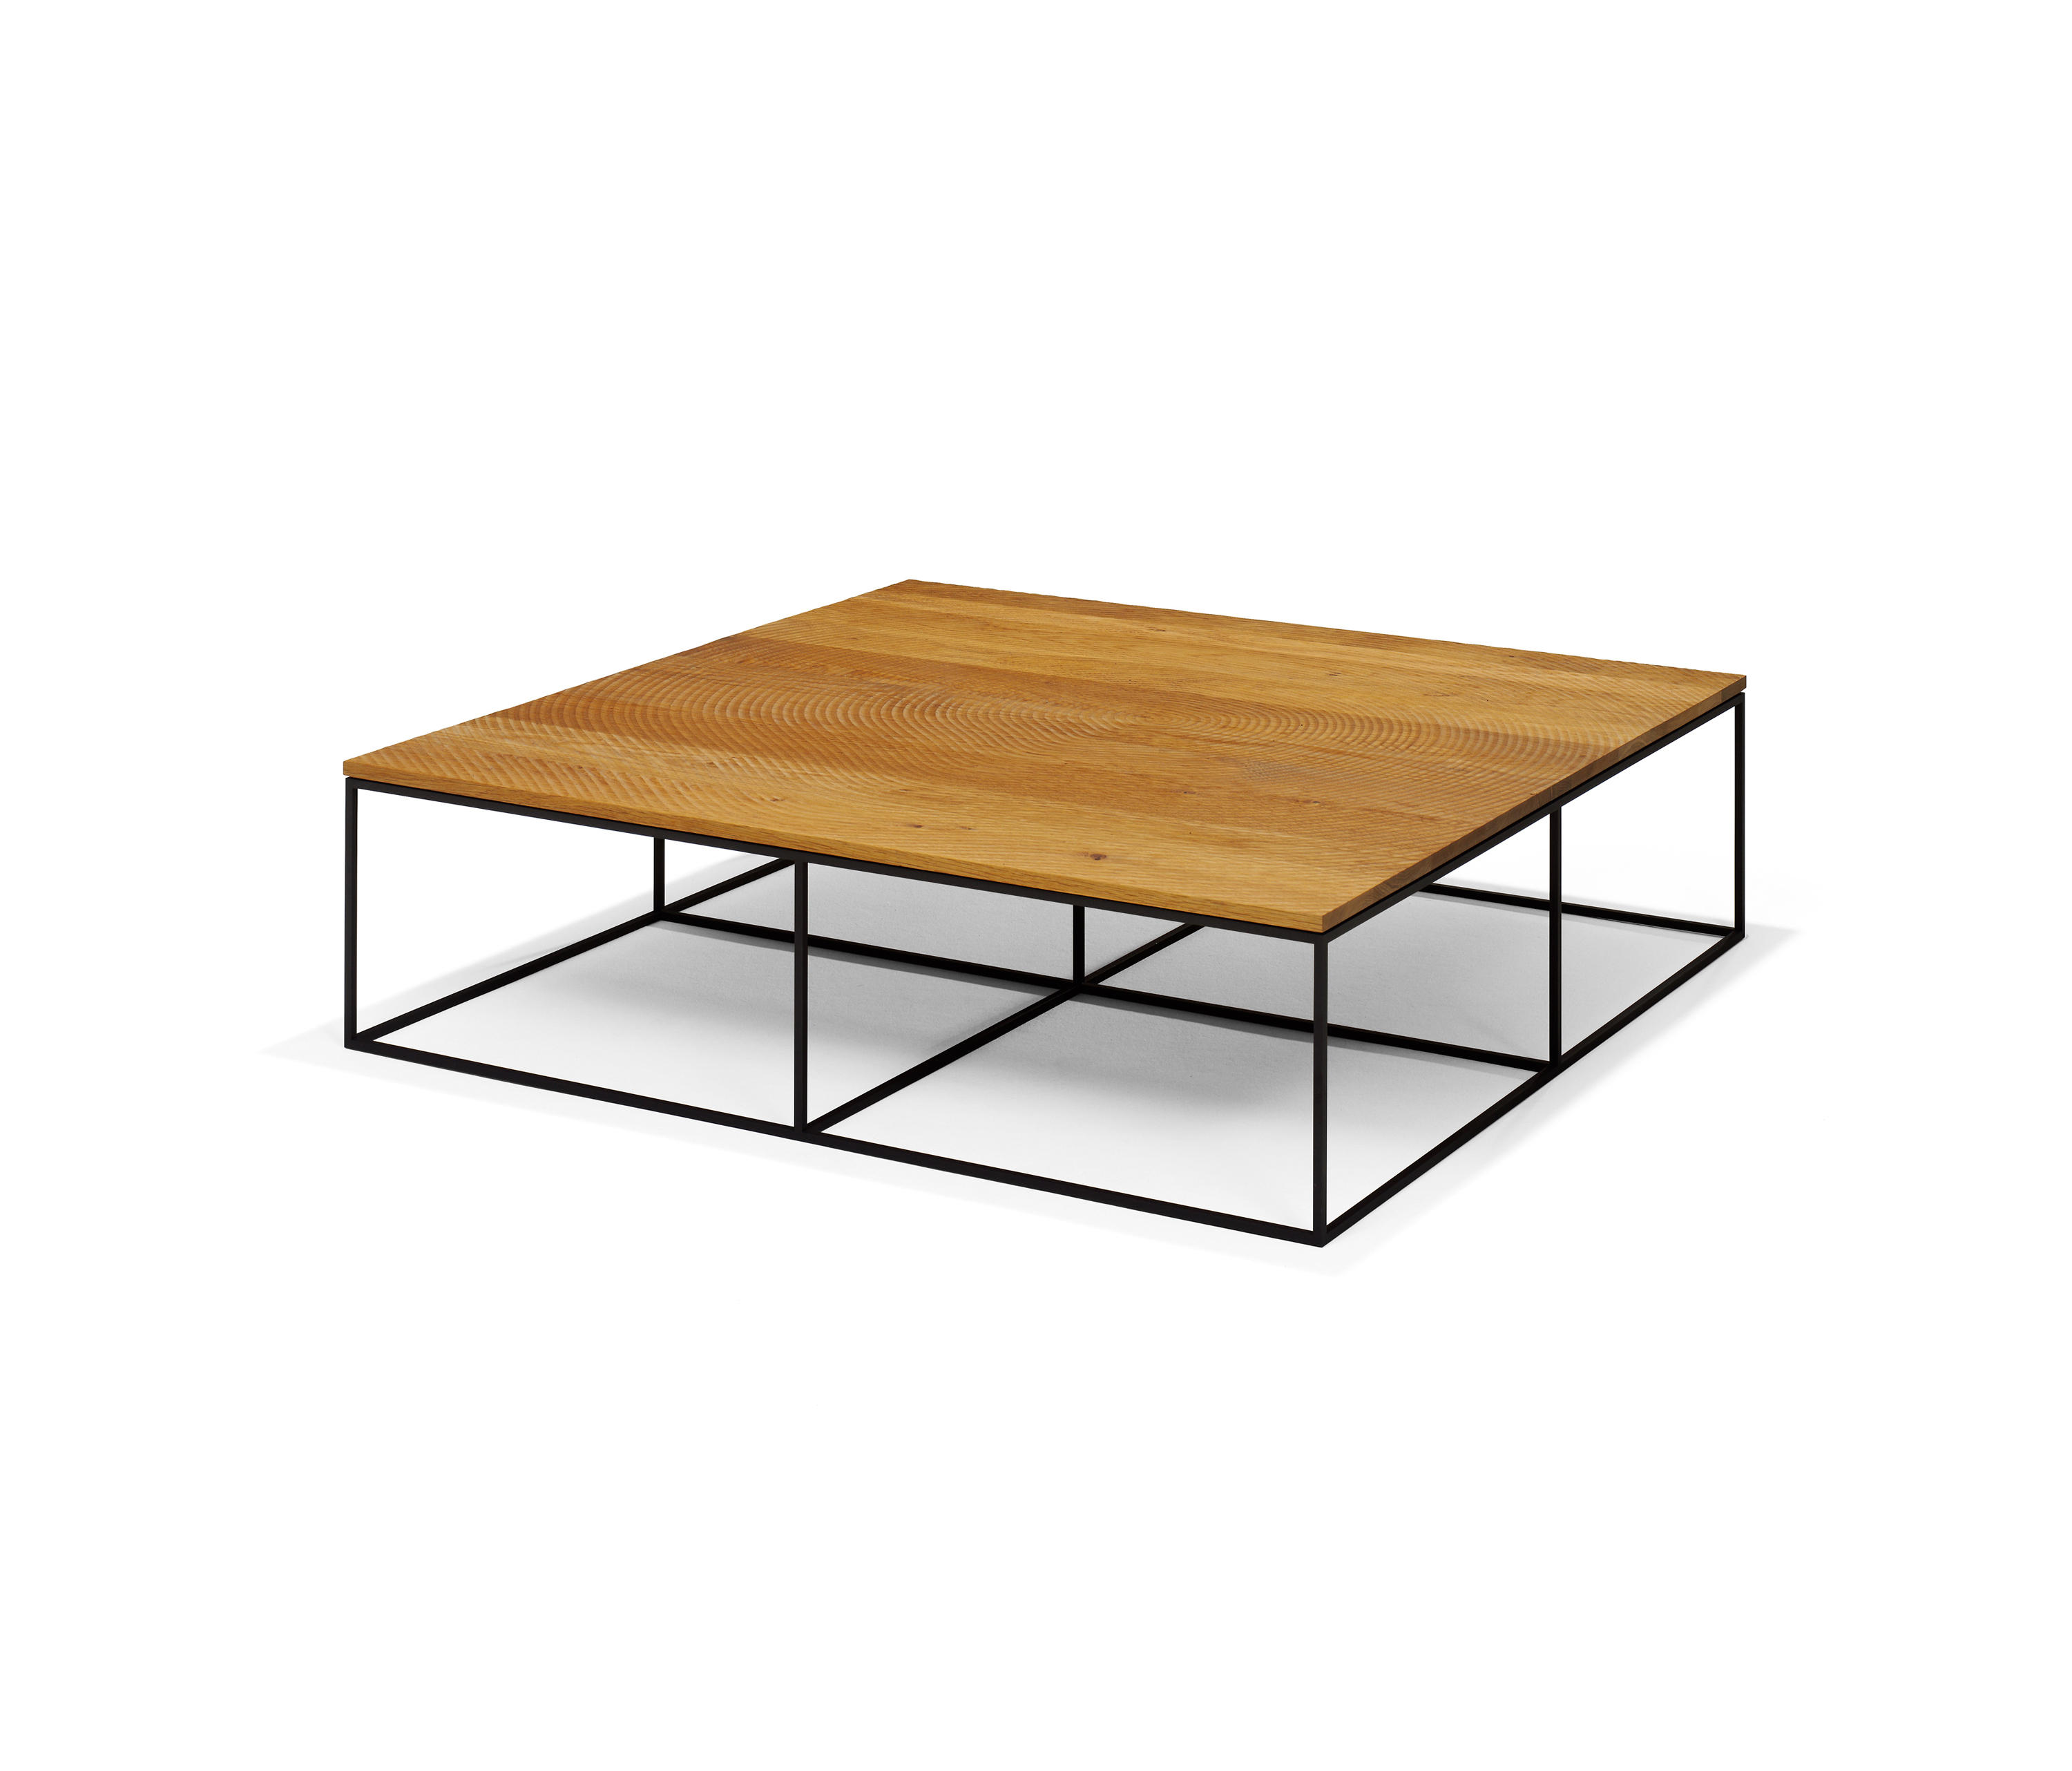 Design Bank Roderick Vos.Log Coffee Tables From Linteloo Architonic